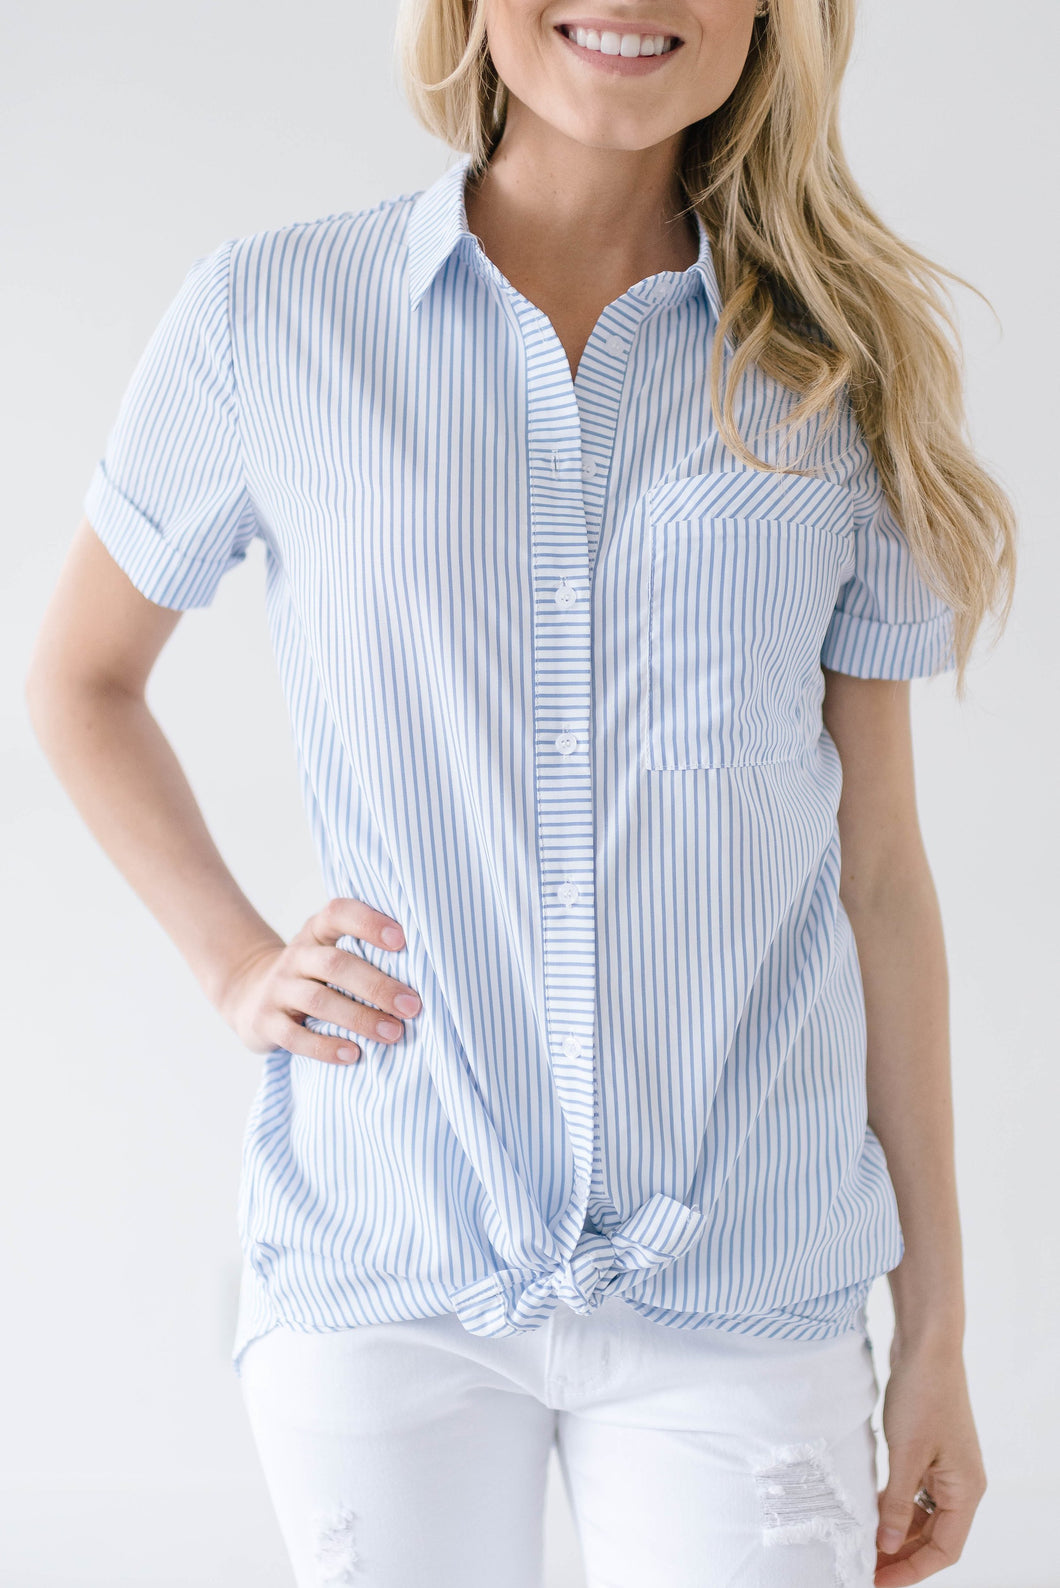 Boyfriend Stripes Top